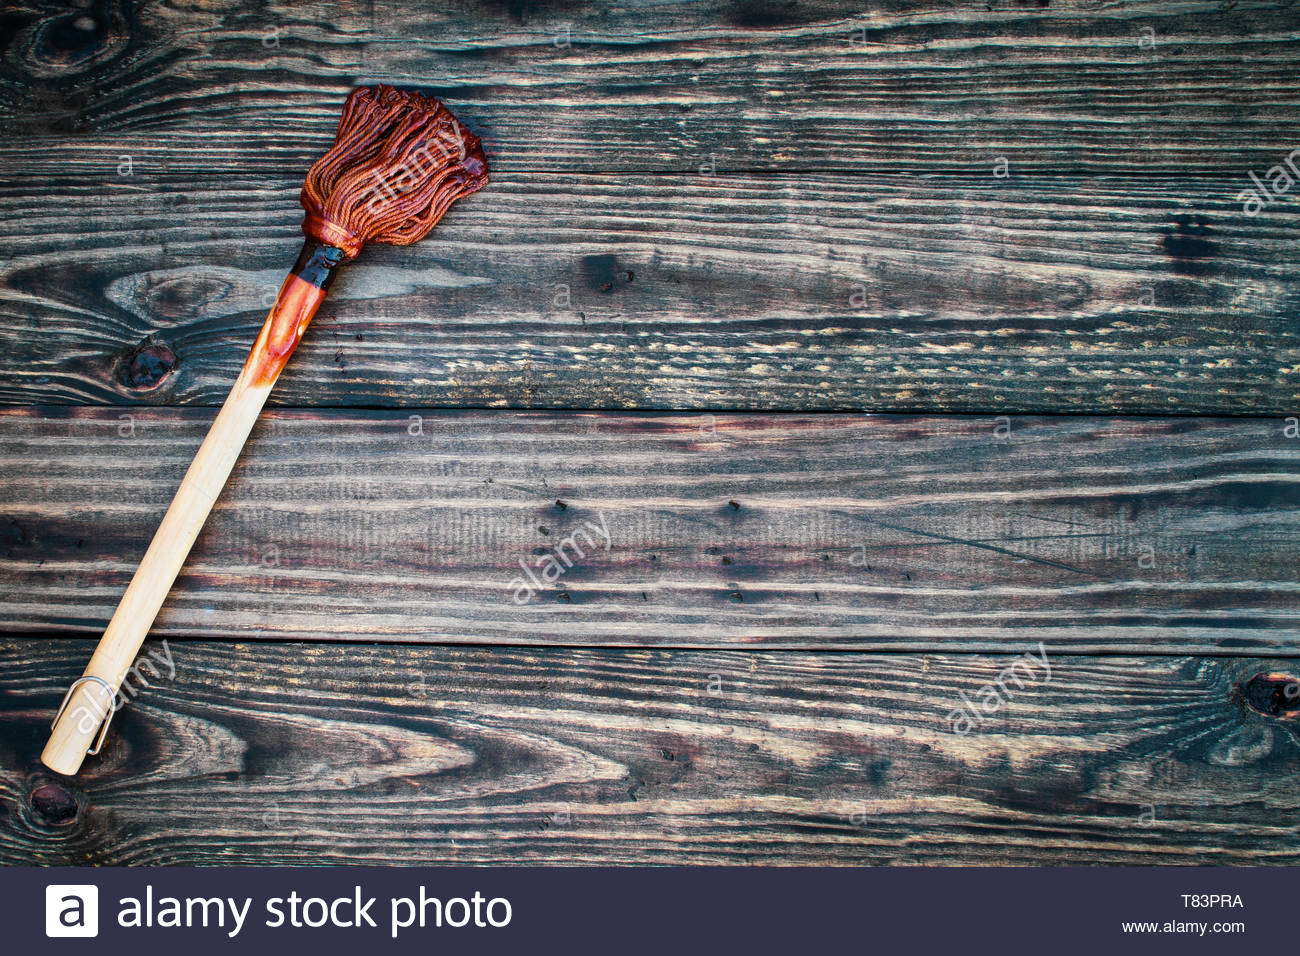 BBQ Mop or brush over top a rustic wood table background with 1300x956